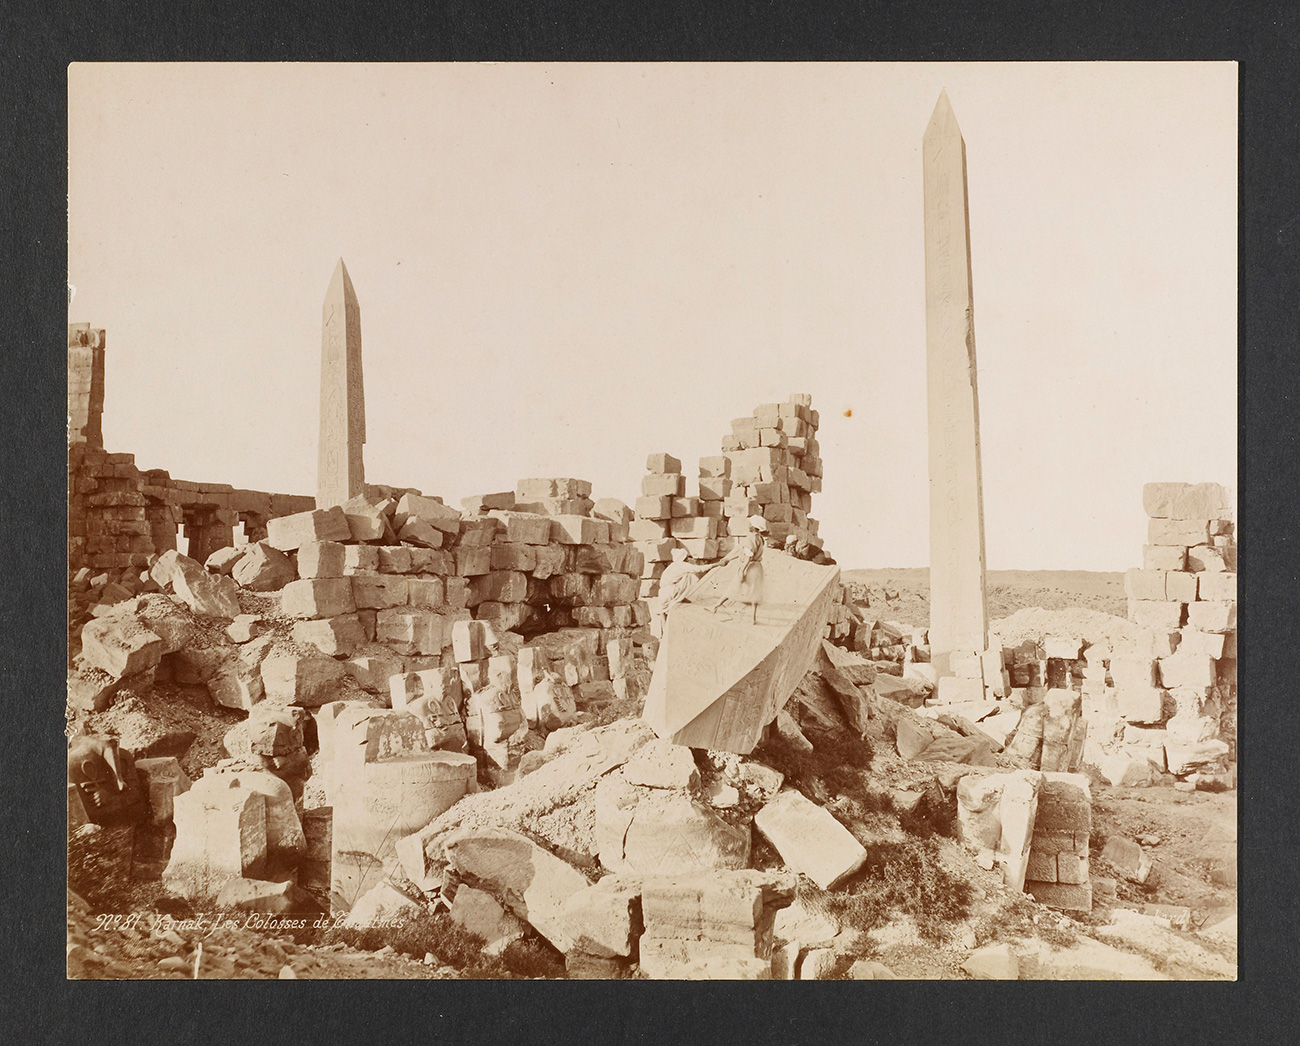 Sepia-toned photograph with two obelisks; fallen blocks are scattered in the foreground and background of the landscape.